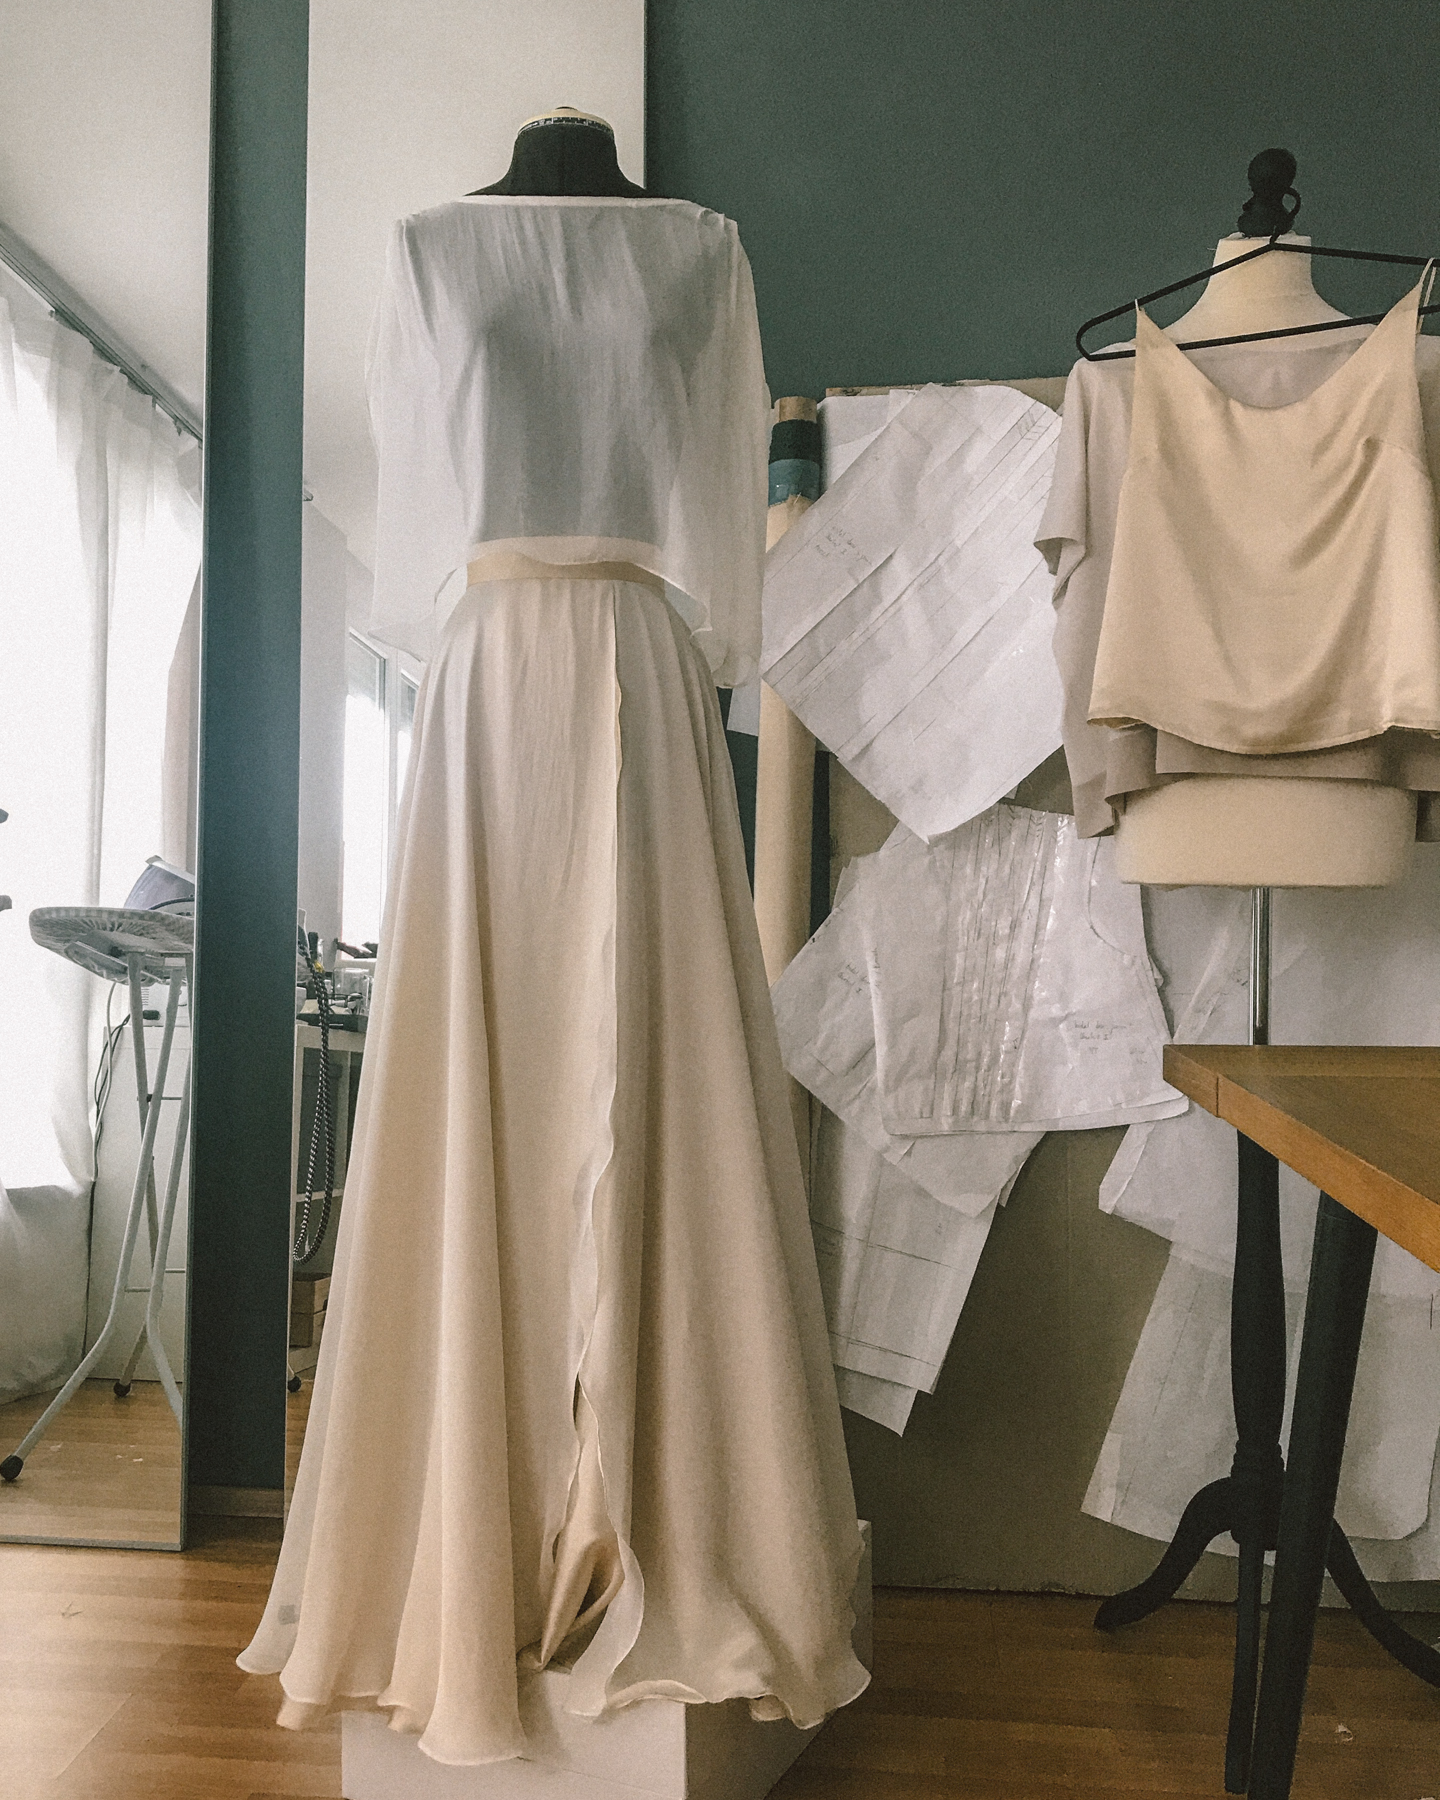 frank-lin-bridal-dress-hochzeitskleid-individuell-custom-stuttgart-brautkleiddesigner-making-of-behind-the-scenes